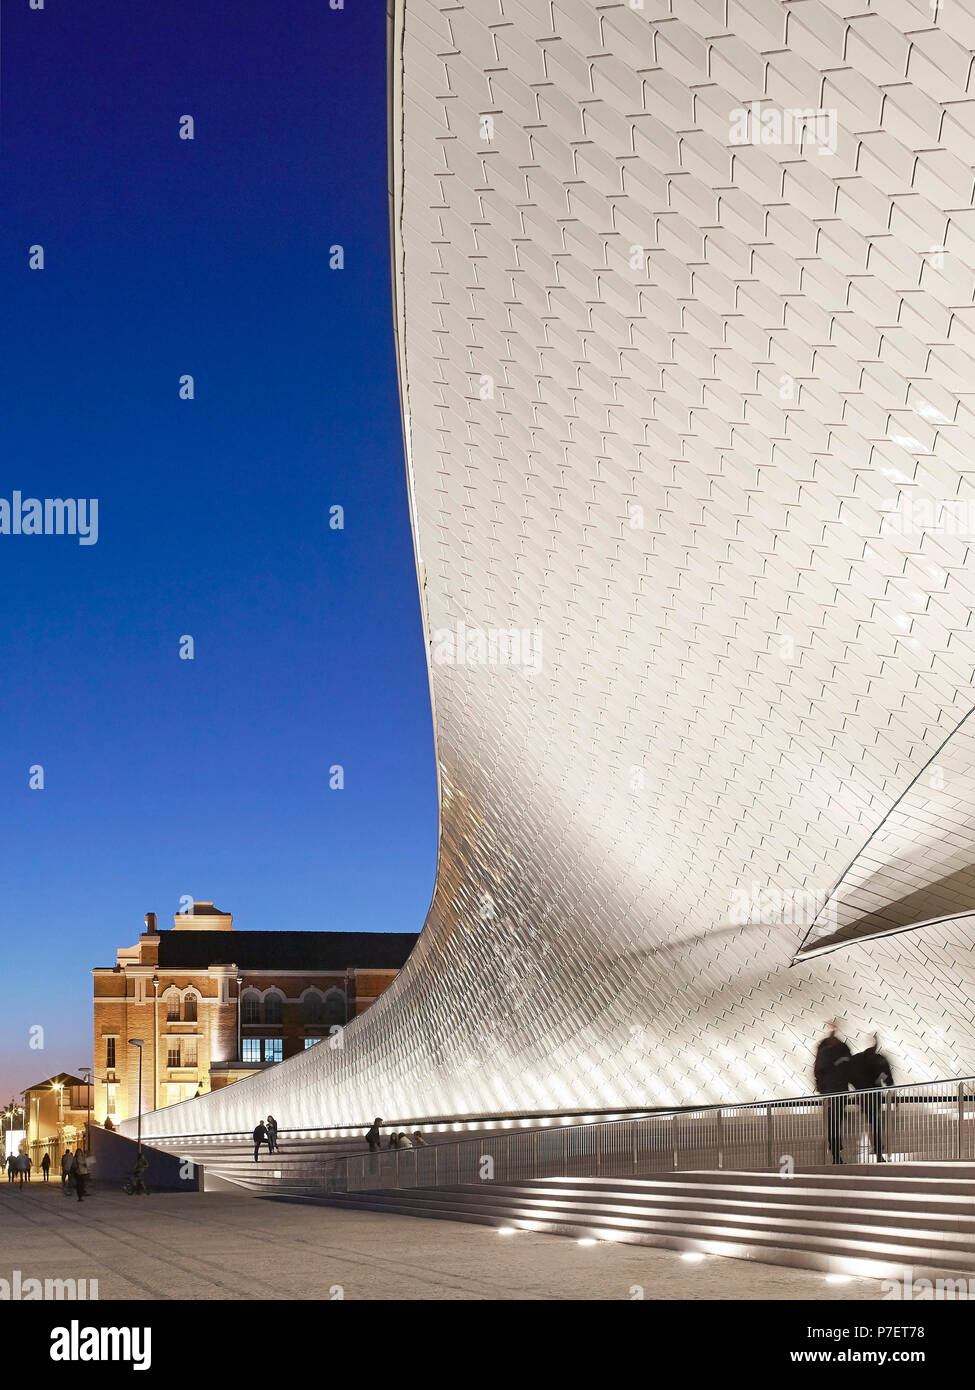 Illuminated and glowing facade at night. MAAT, Lisbon, Portugal. Architect: A_LA, 2016. - Stock Image